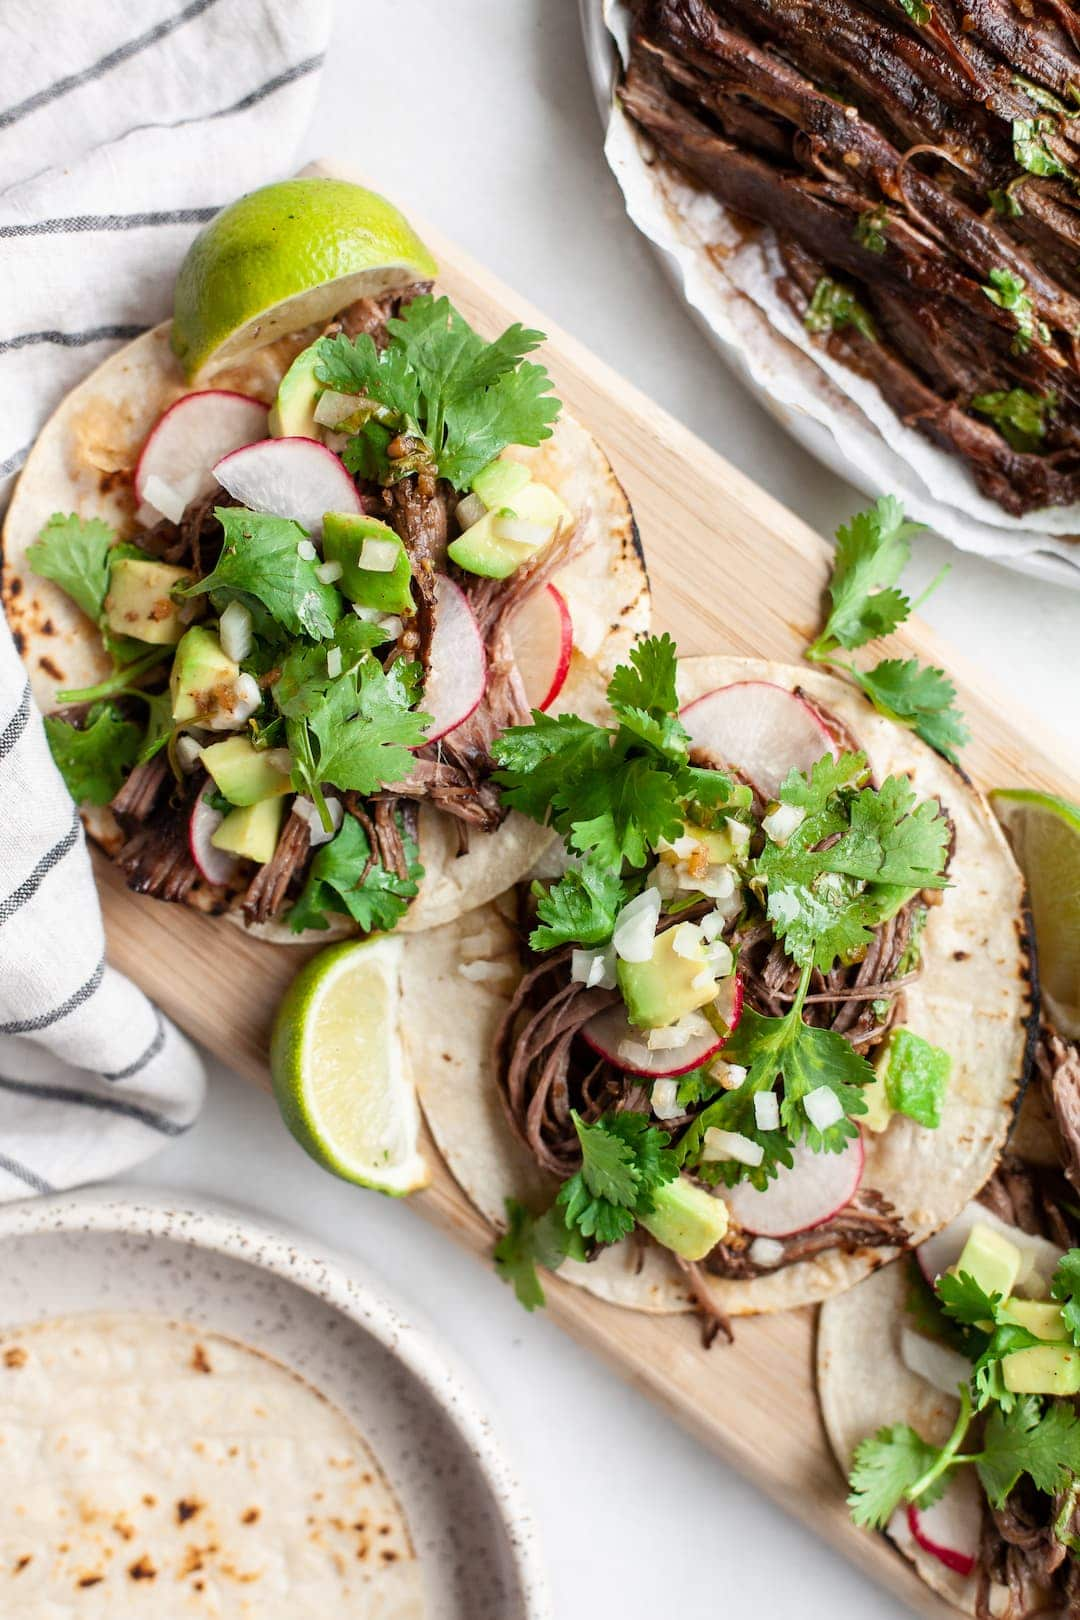 Two tacos filled with crockpot carne asada beef garnished with cilantro